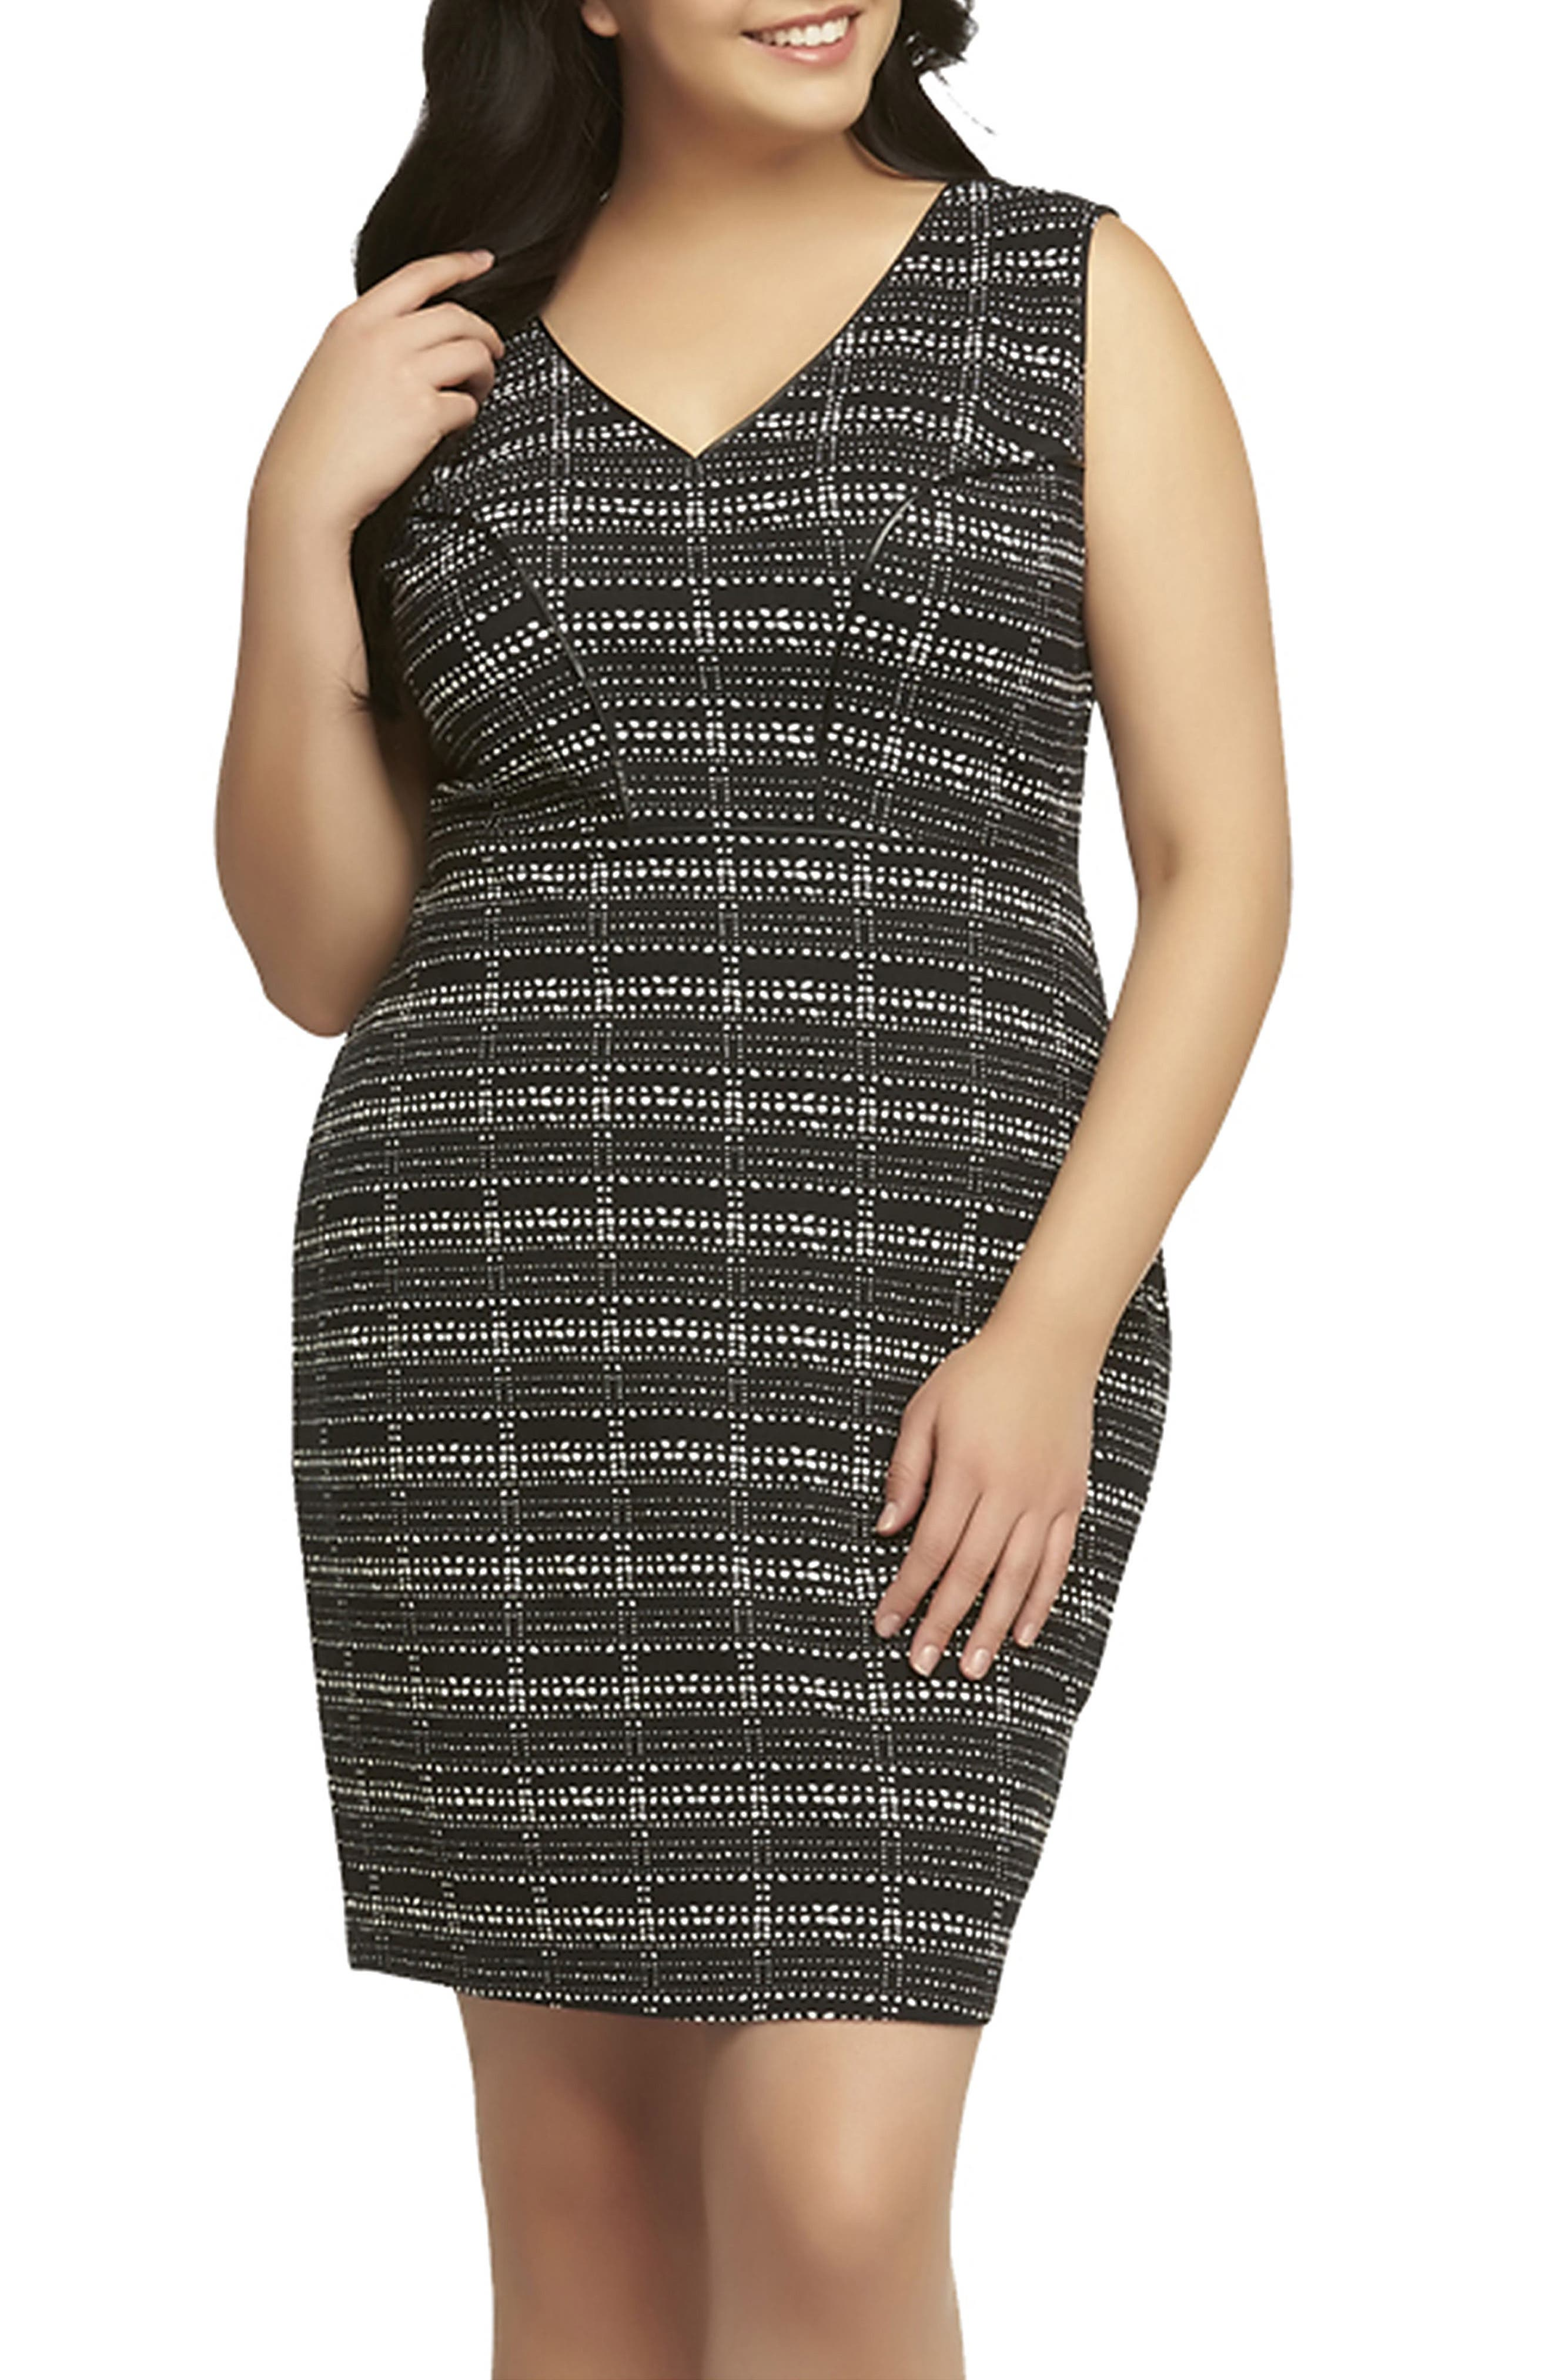 Alternate Image 1 Selected - Tart 'Viera' Piped Detail V-Neck Sheath Dress (Plus Size)